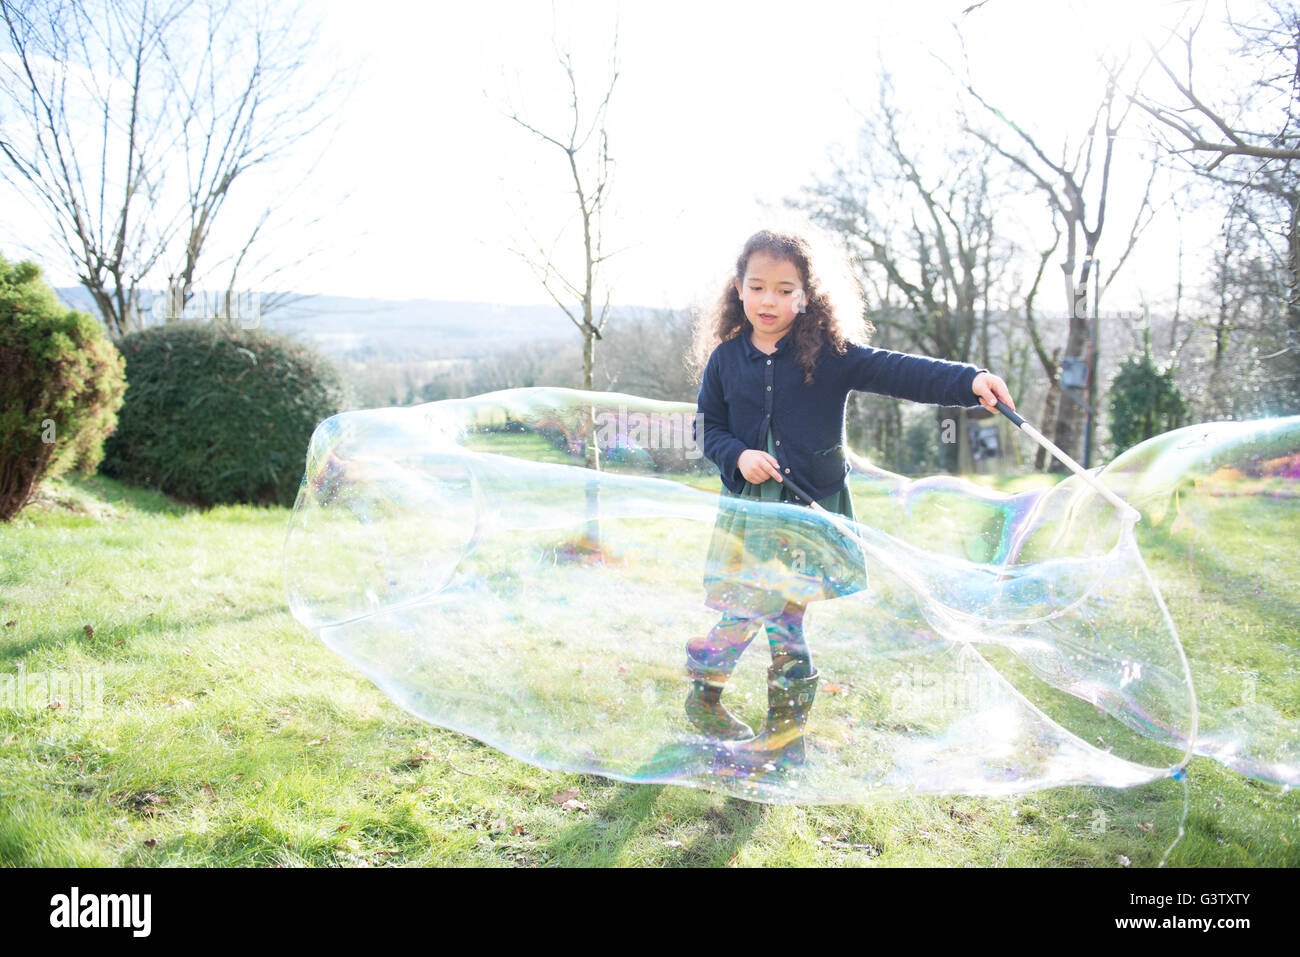 A six year old girl creating enormous bubbles in a garden. - Stock Image